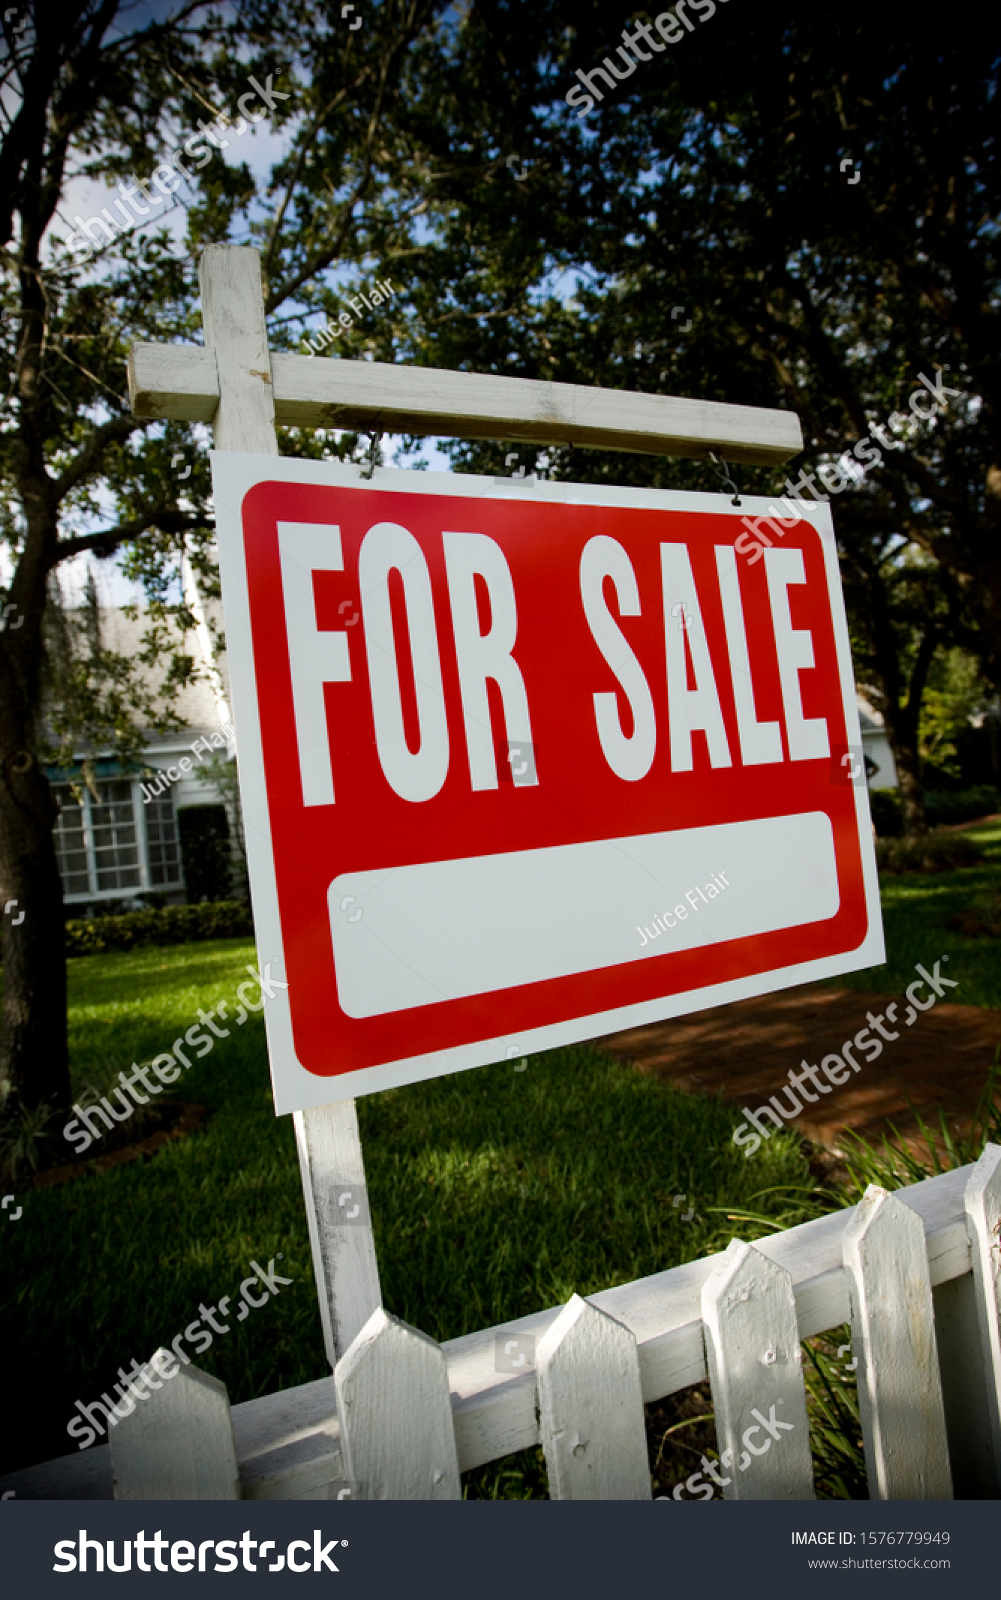 For sale sign outside a family house #1576779949